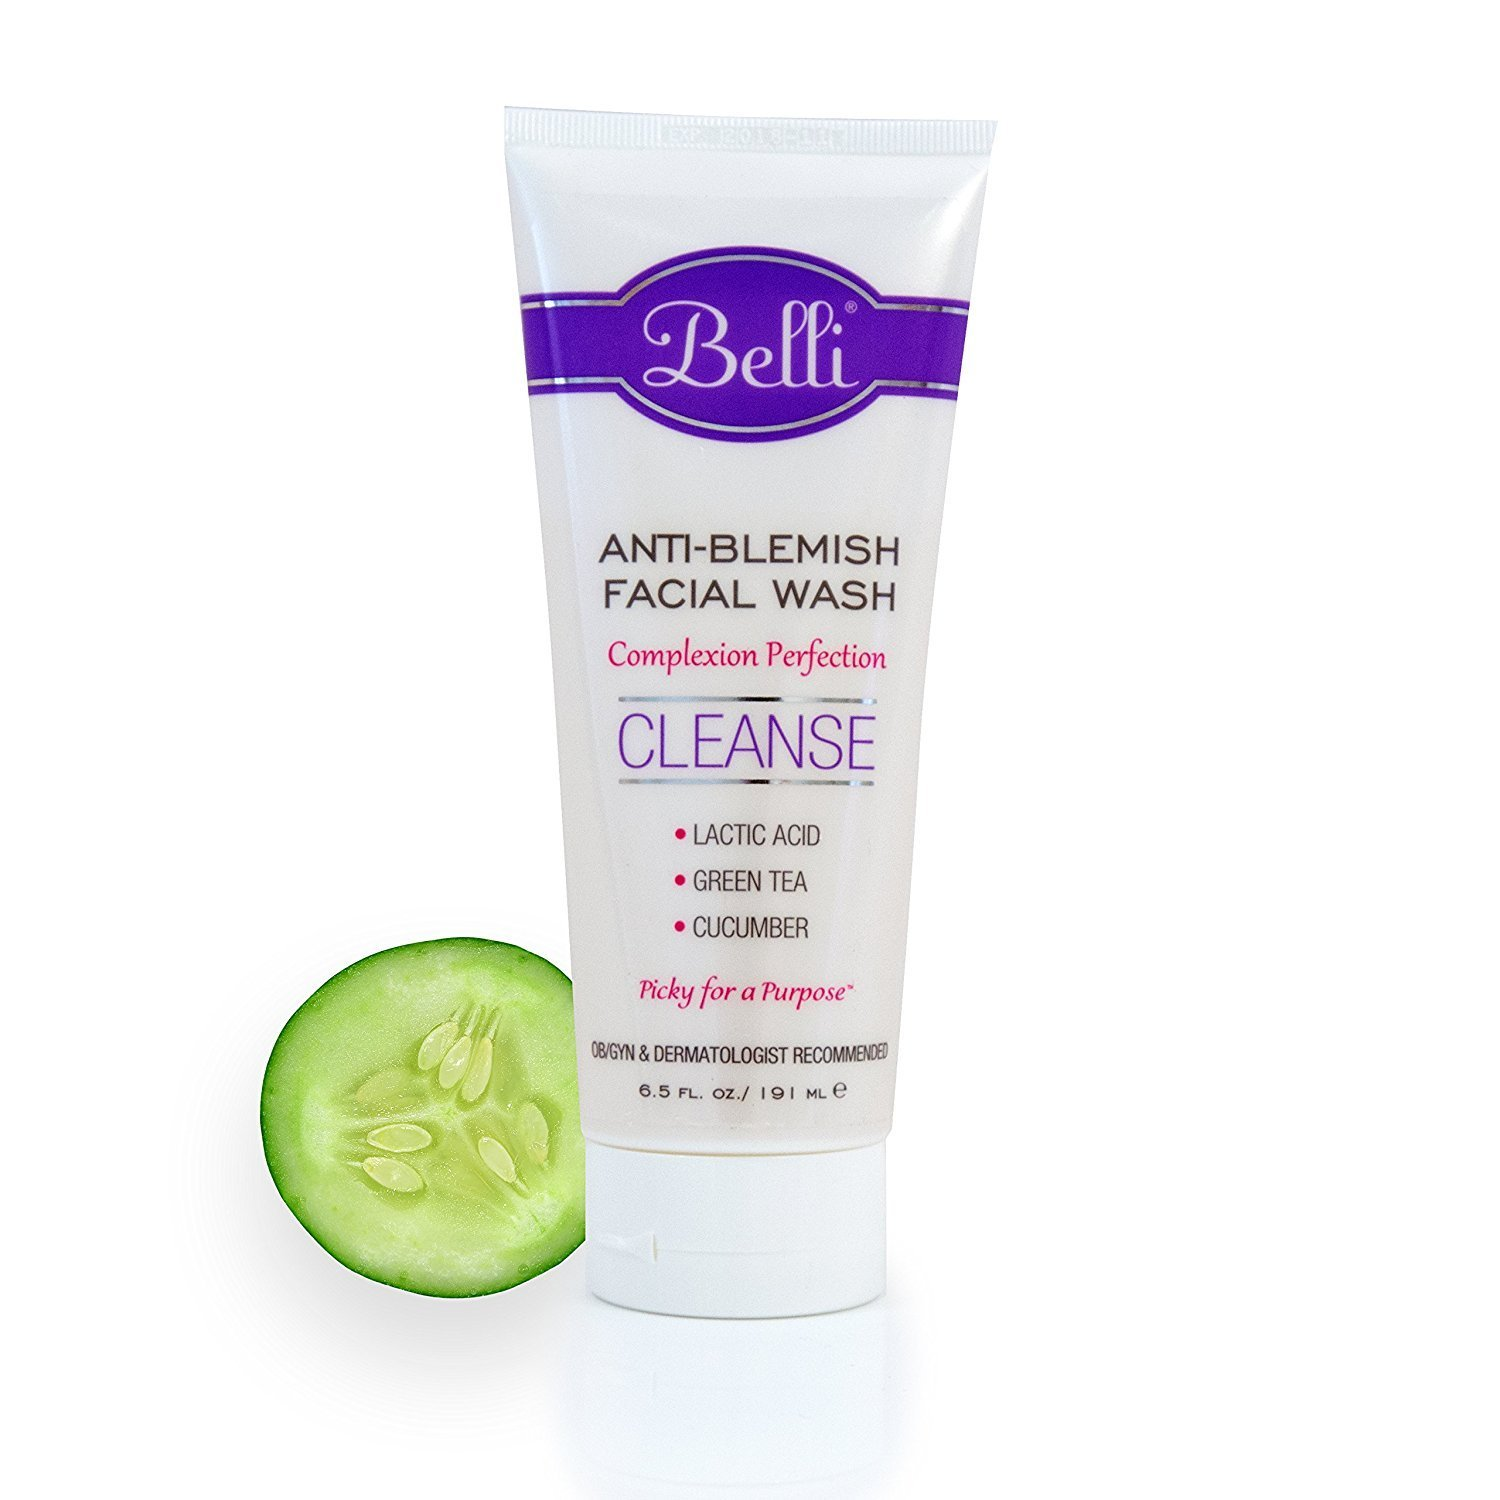 belli anti-blemish facial wash, face wash, facial wash, best pregnancy skin care products, pregnancy safe skin care, pregnancy acne treatment, pregnancy acne wash